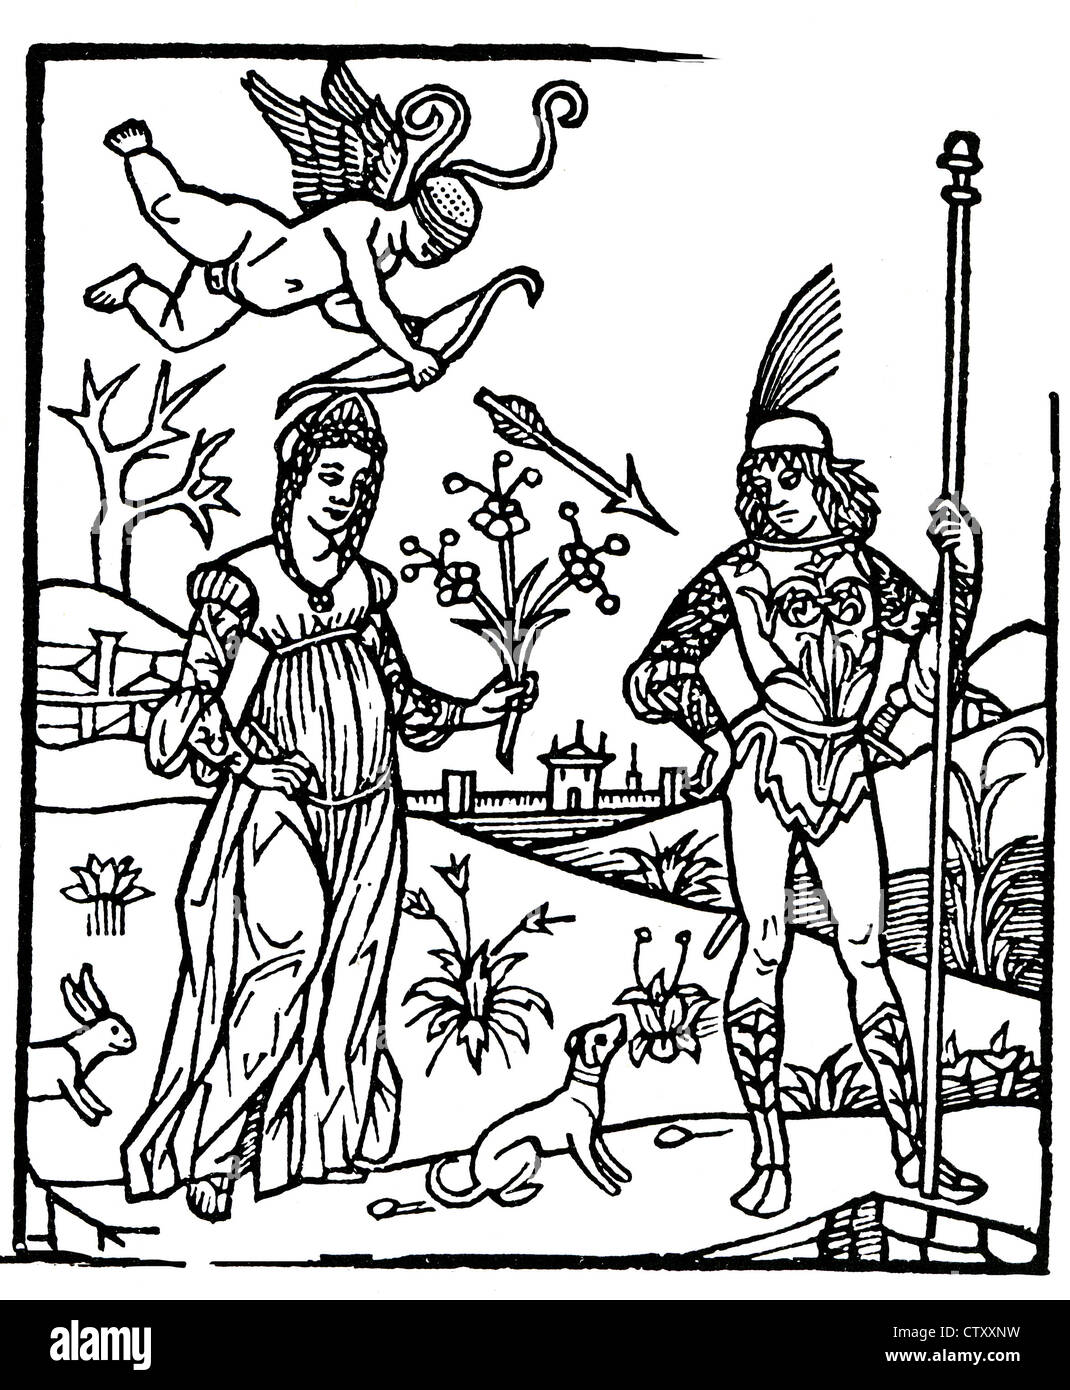 TWO LOVERS in an Italian woodcut about 1500 - Stock Image